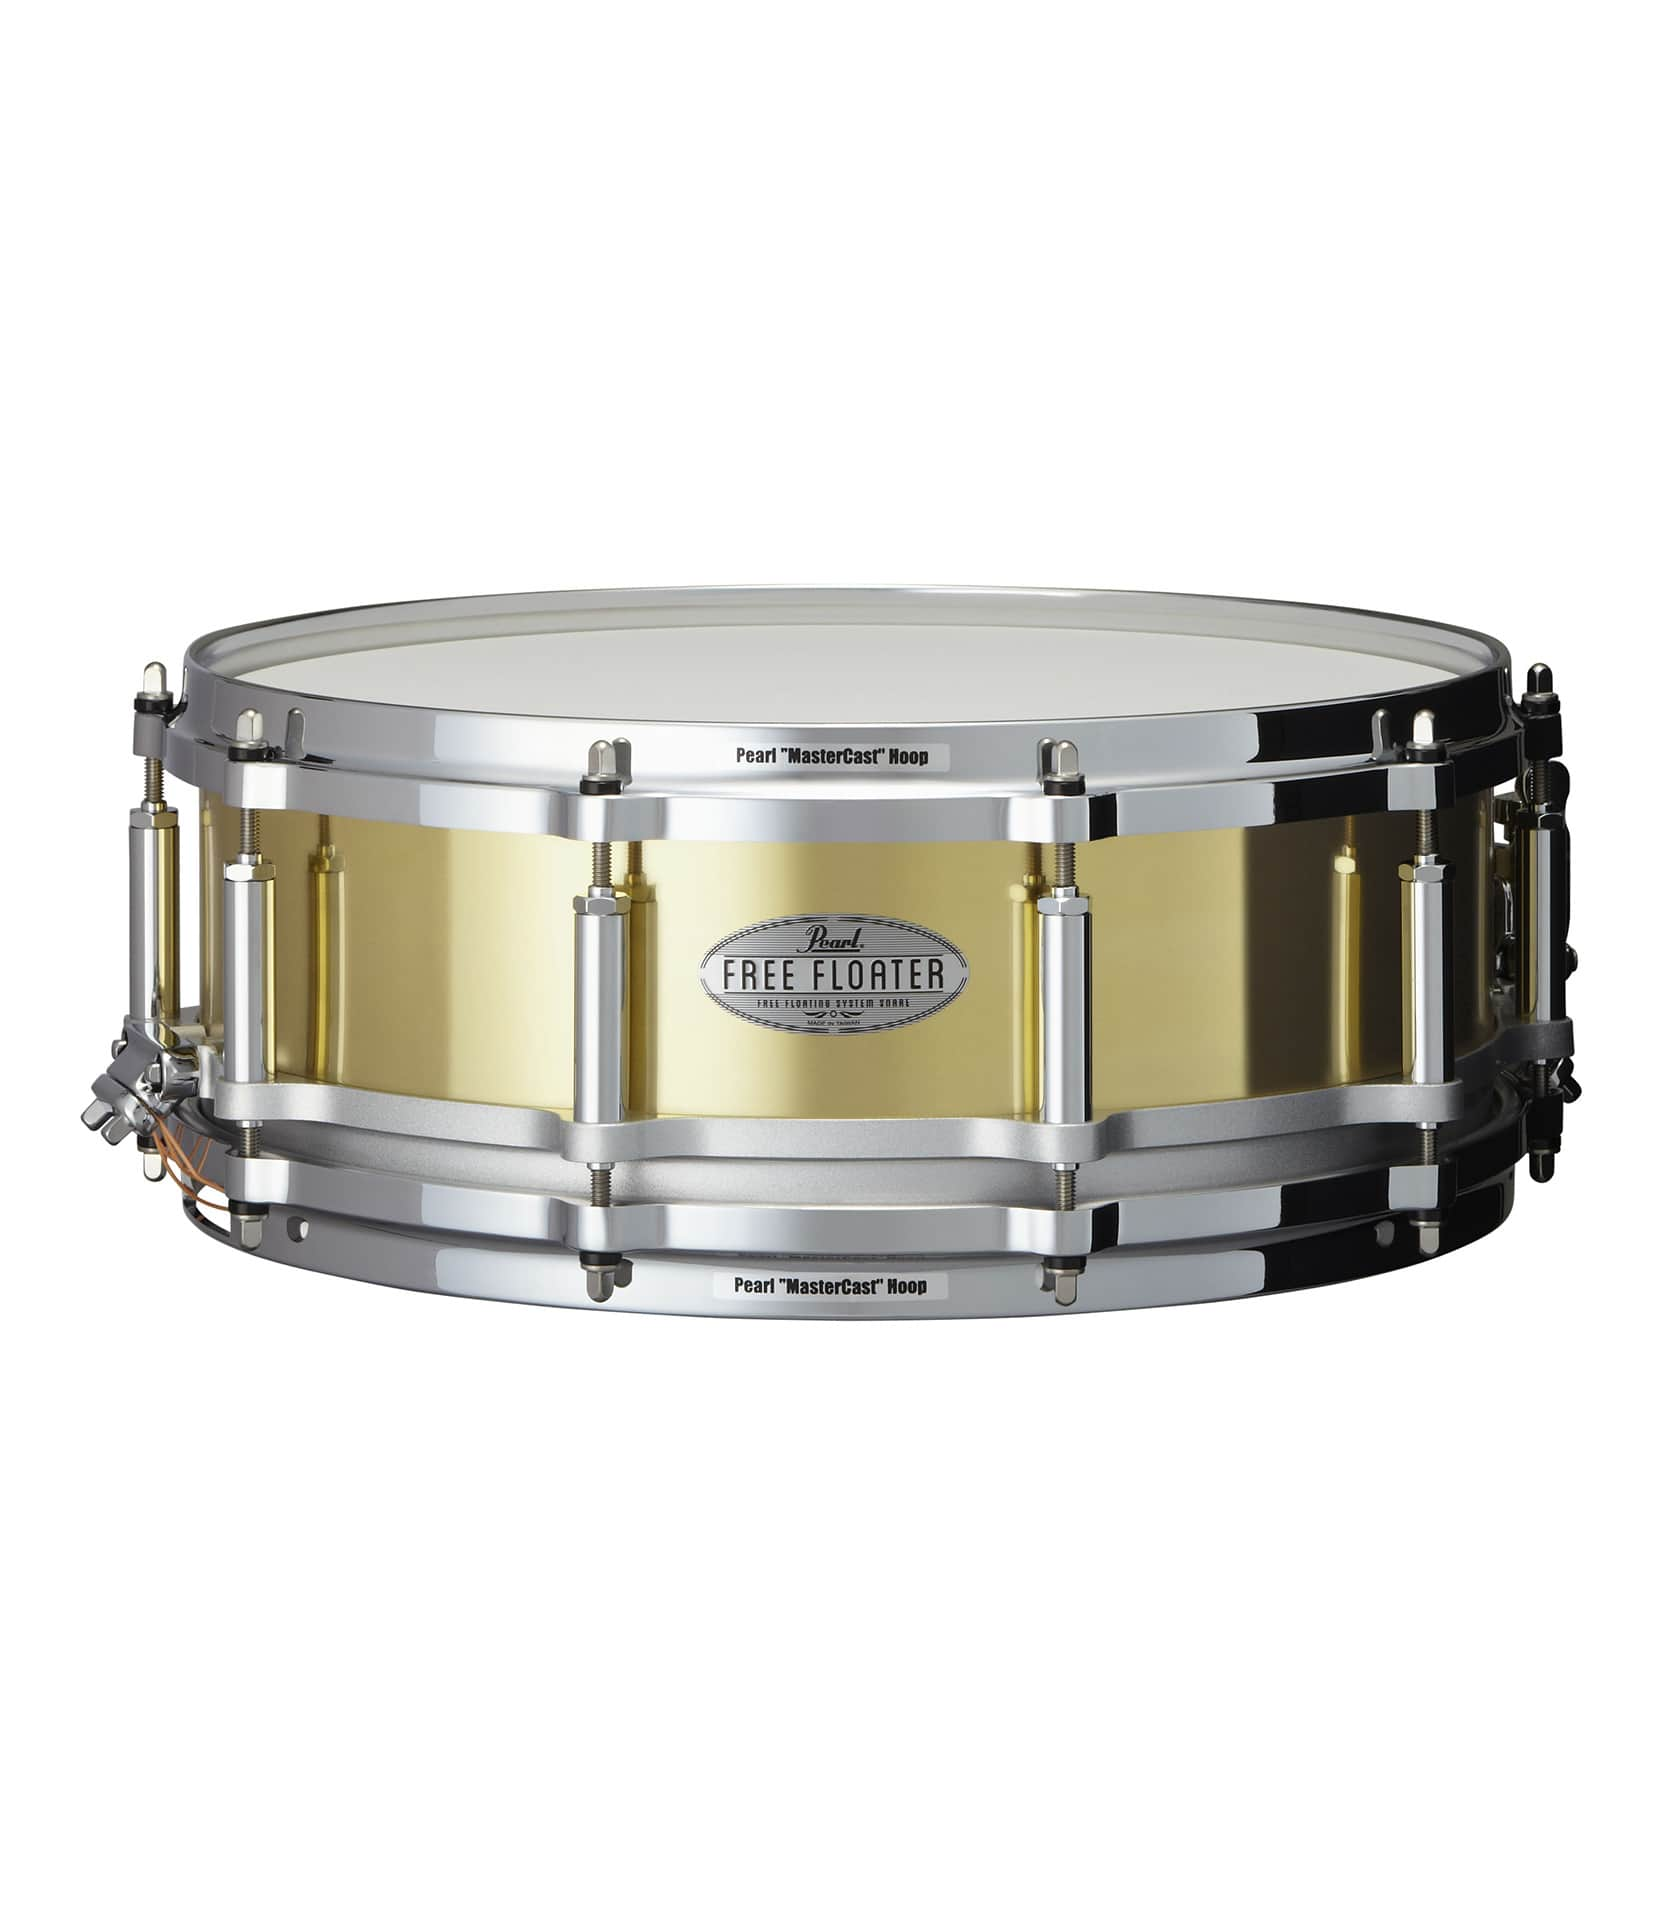 buy pearl ftbr1450 14 x 5 inches free floater snare drum